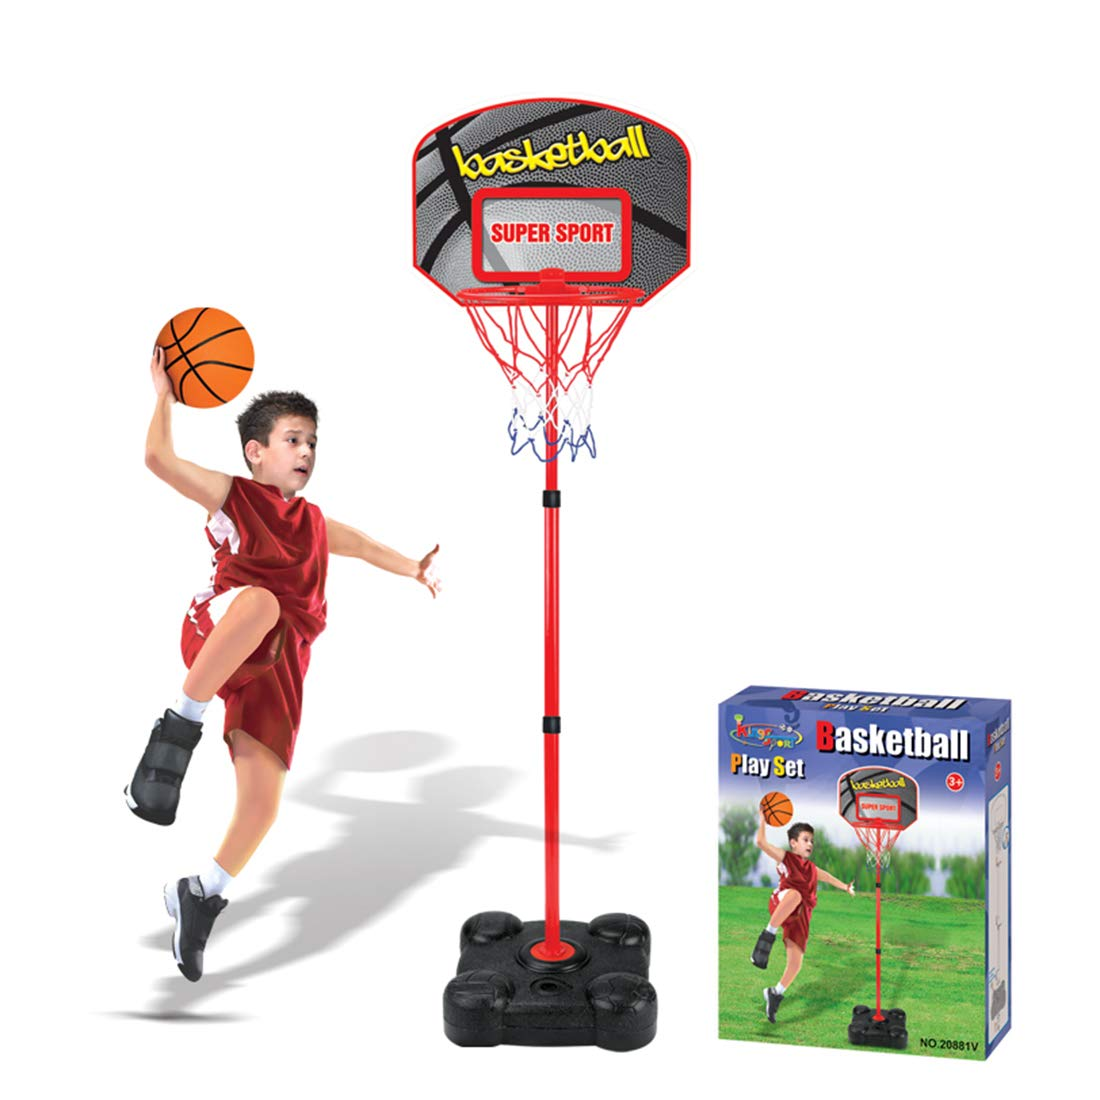 HMANE Children Adjustable Height Basketball Hoop Toys Sports Ball Games Portable Basketball Stand and Goals with Net Outdoor and Indoor by HMANE (Image #1)